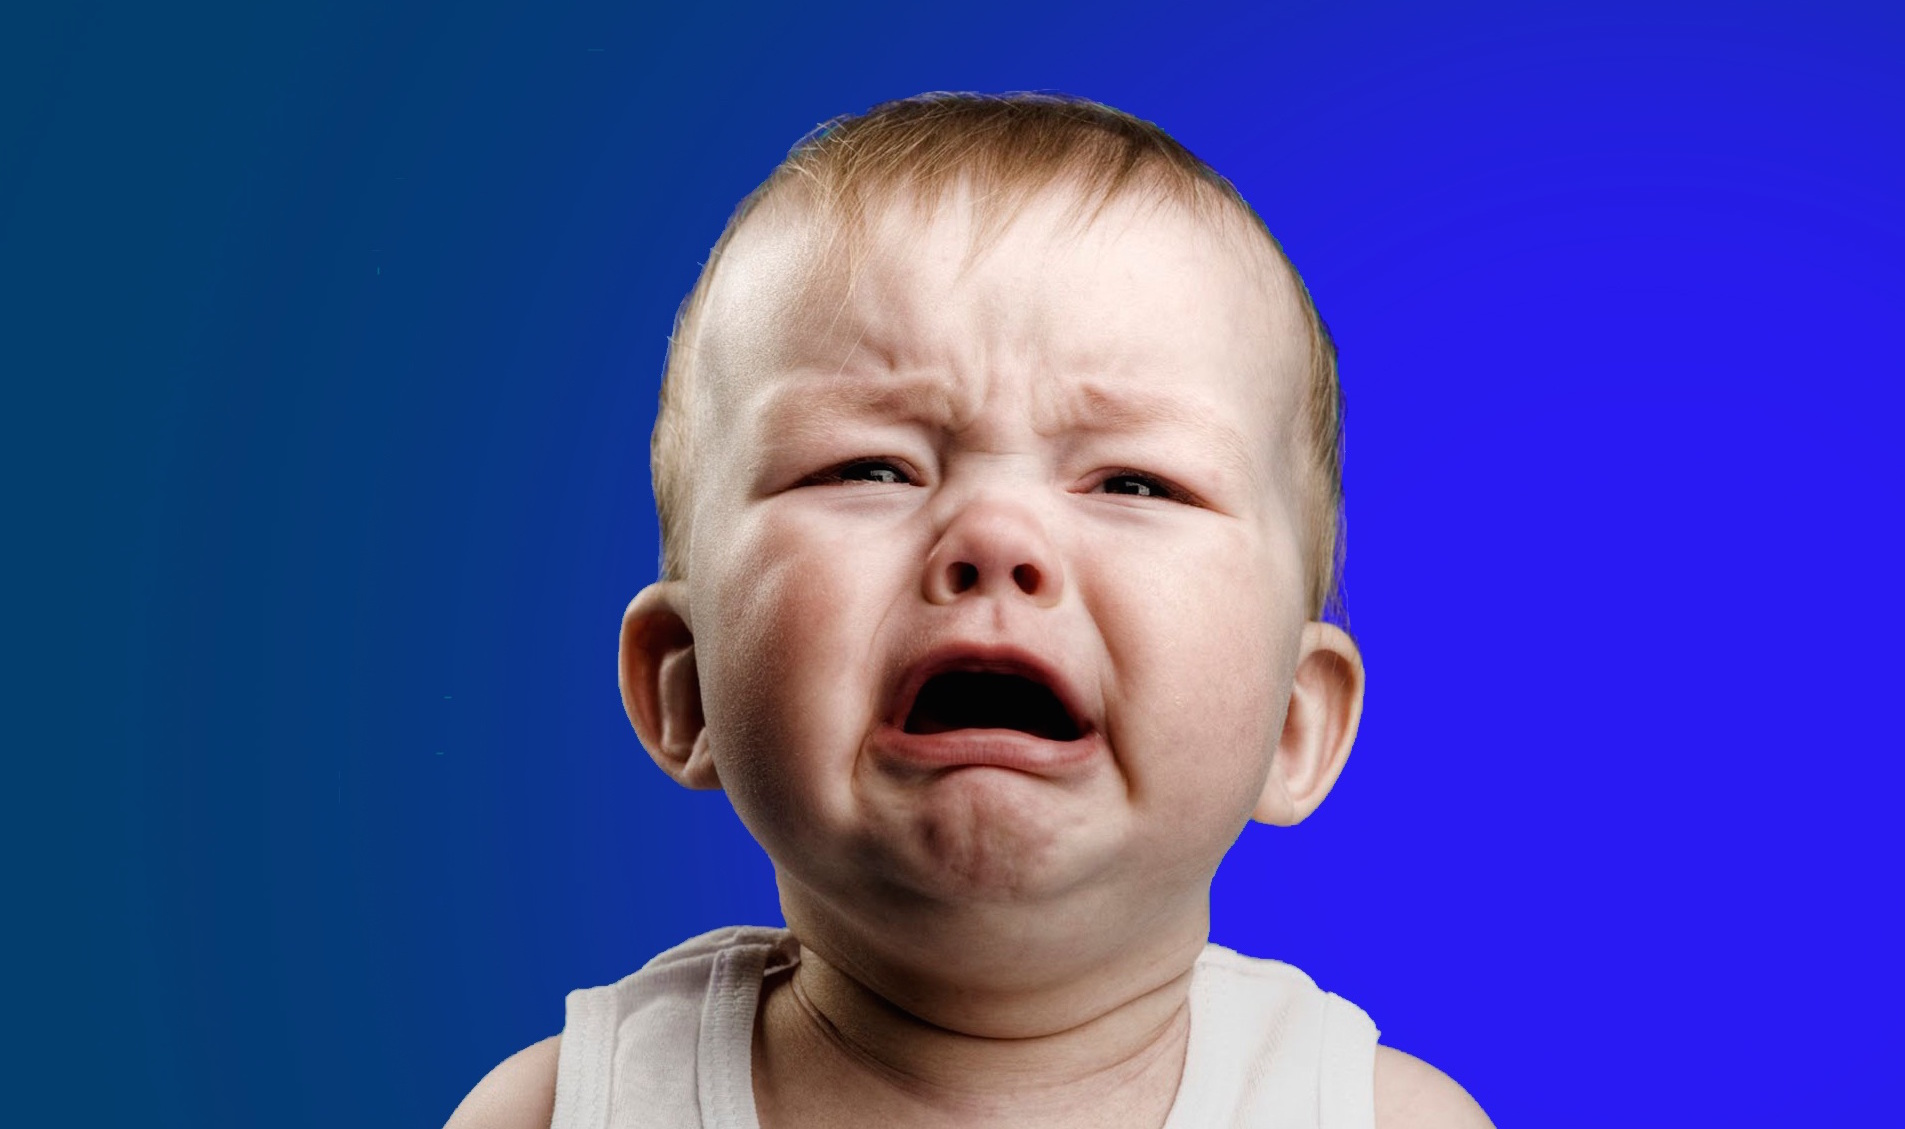 Crying-baby-funny-face